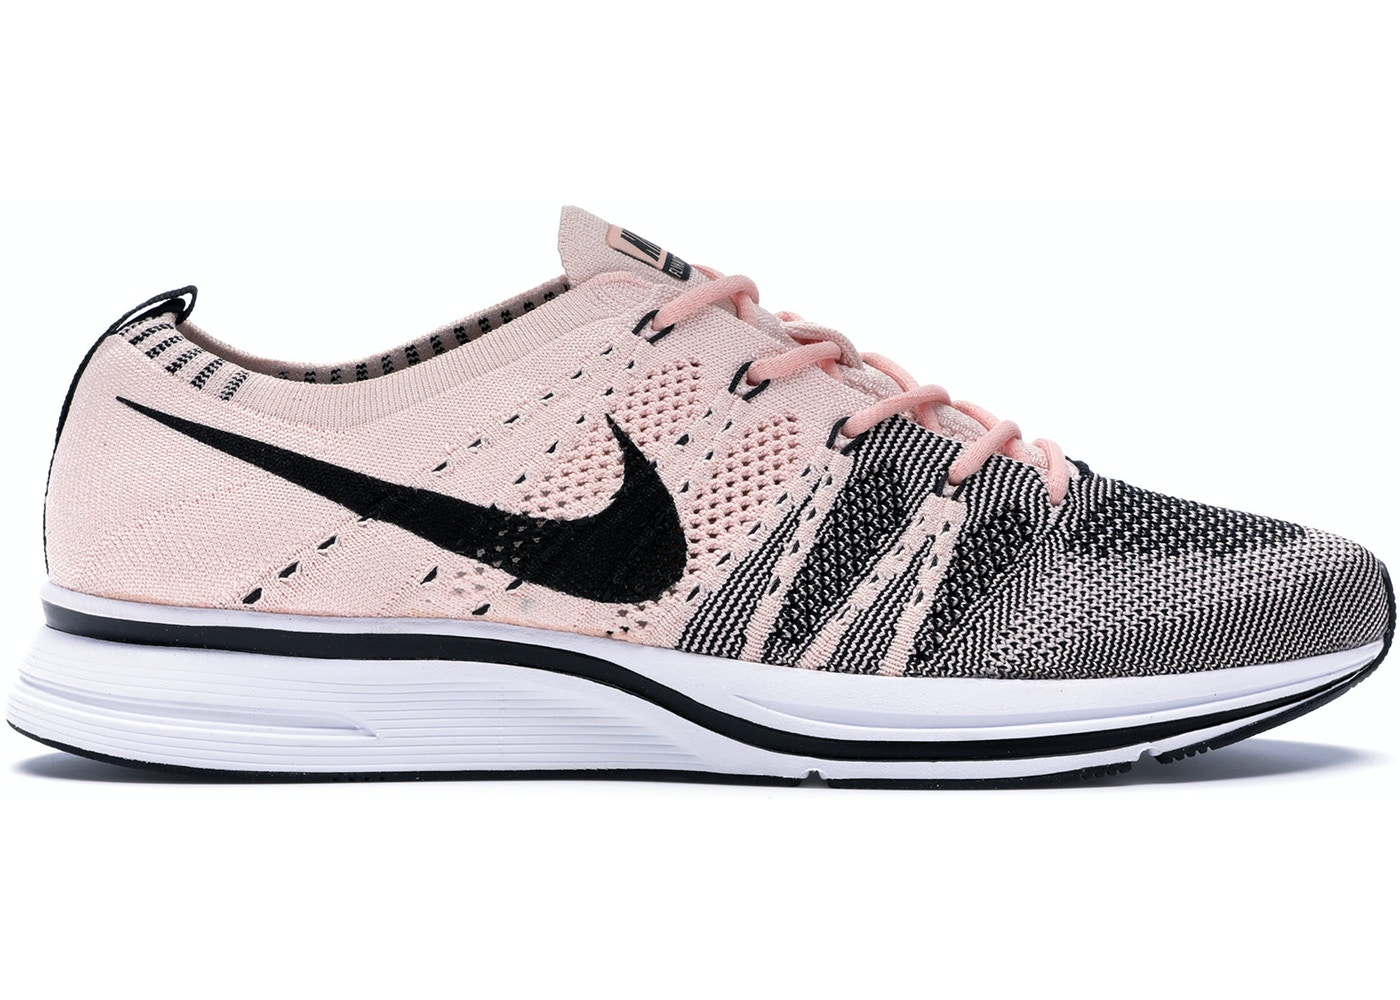 dc02c26ef3683 Flyknit Trainer Sunset Tint - AH8396-600